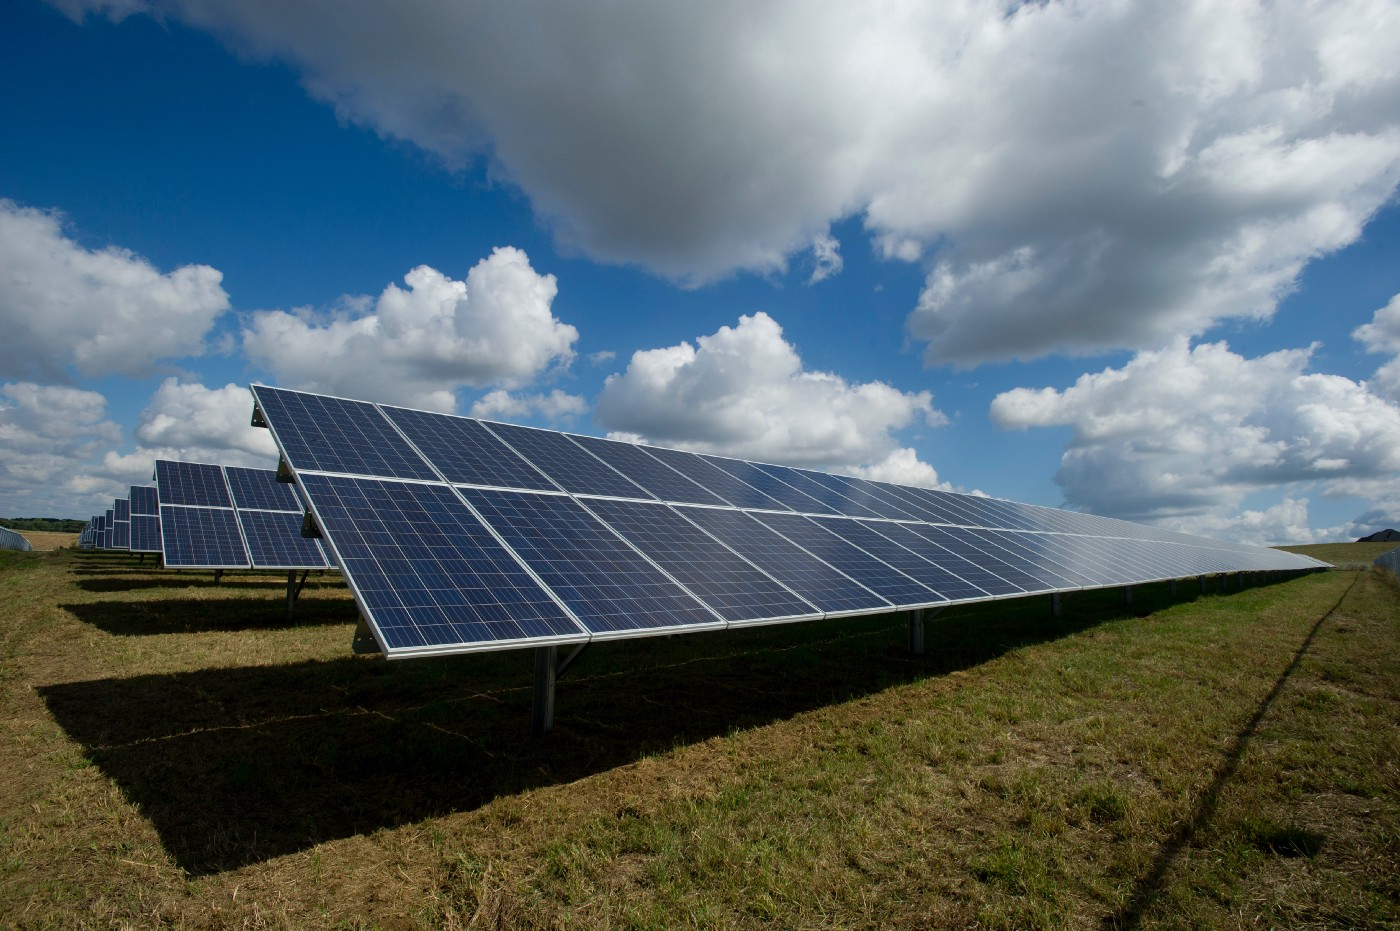 Rows of solar panels in a grassy field. The sky is light blue and dotted with white clouds.